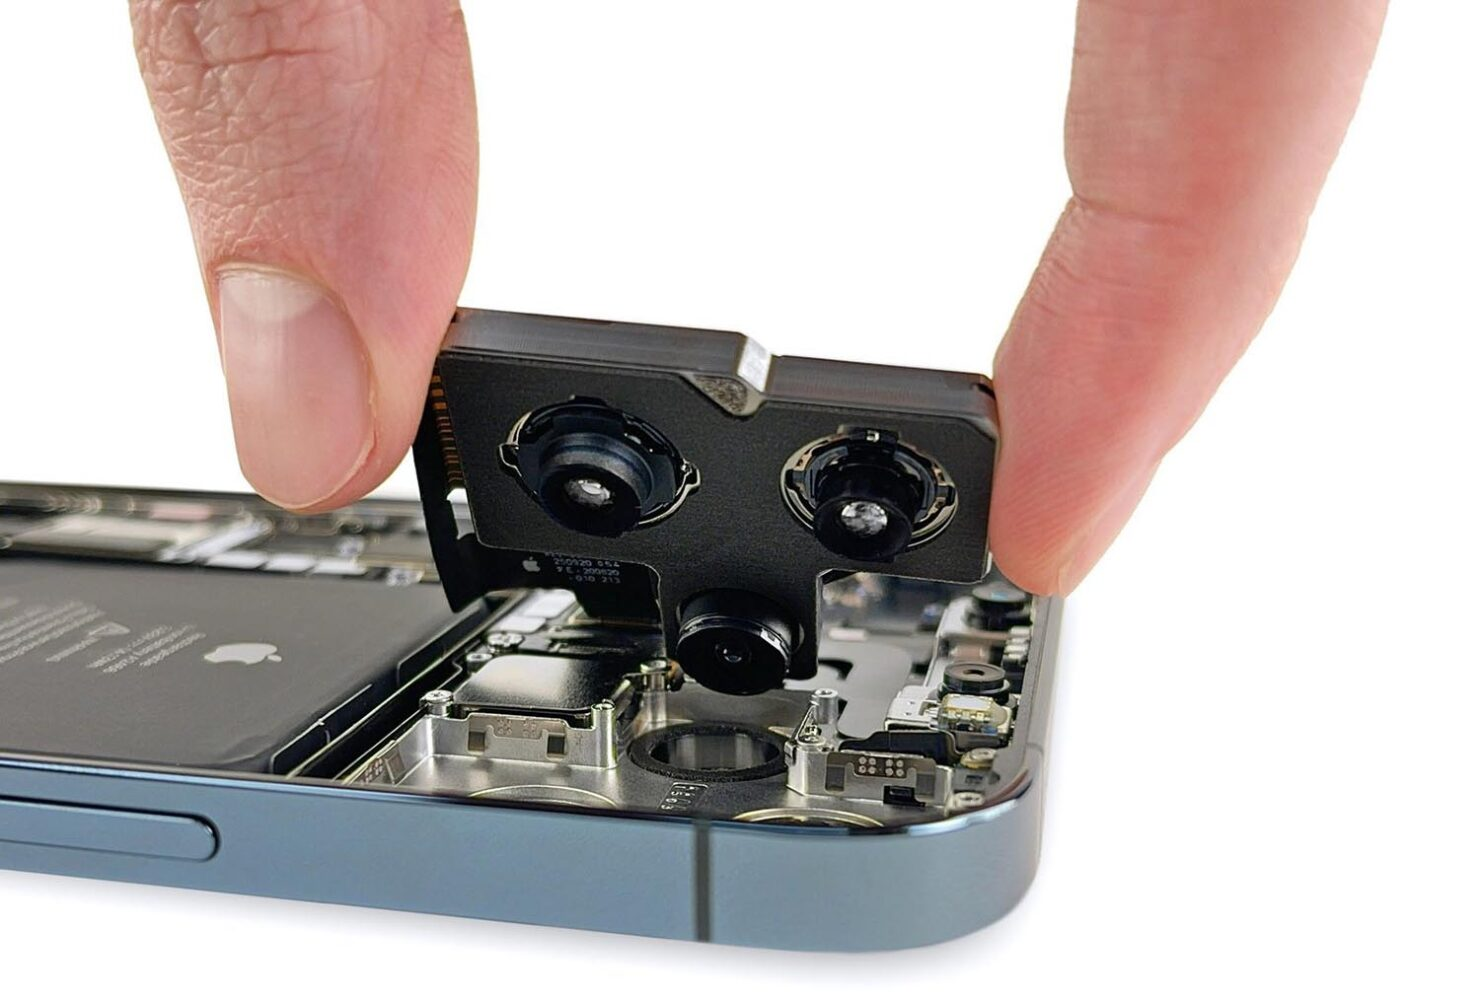 iFixit CEO Criticizes Apple, Samsung in Preventing Consumers From Repairing Their Own Devices